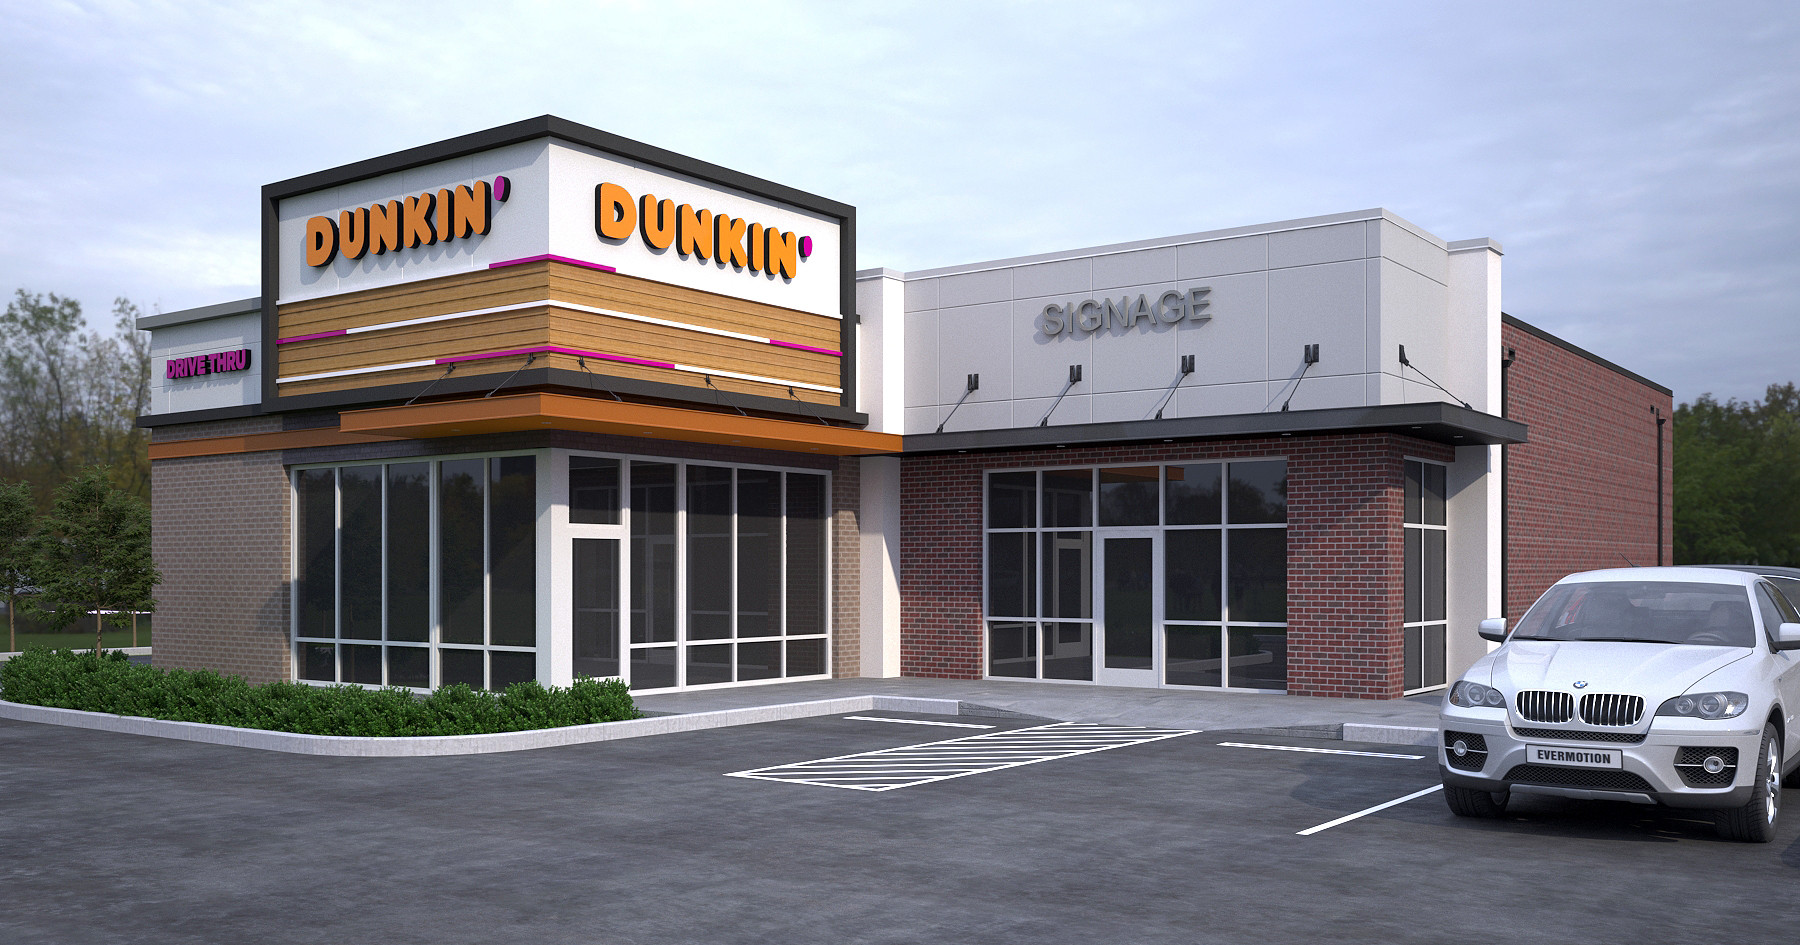 Dunkin Donuts Franchise Design